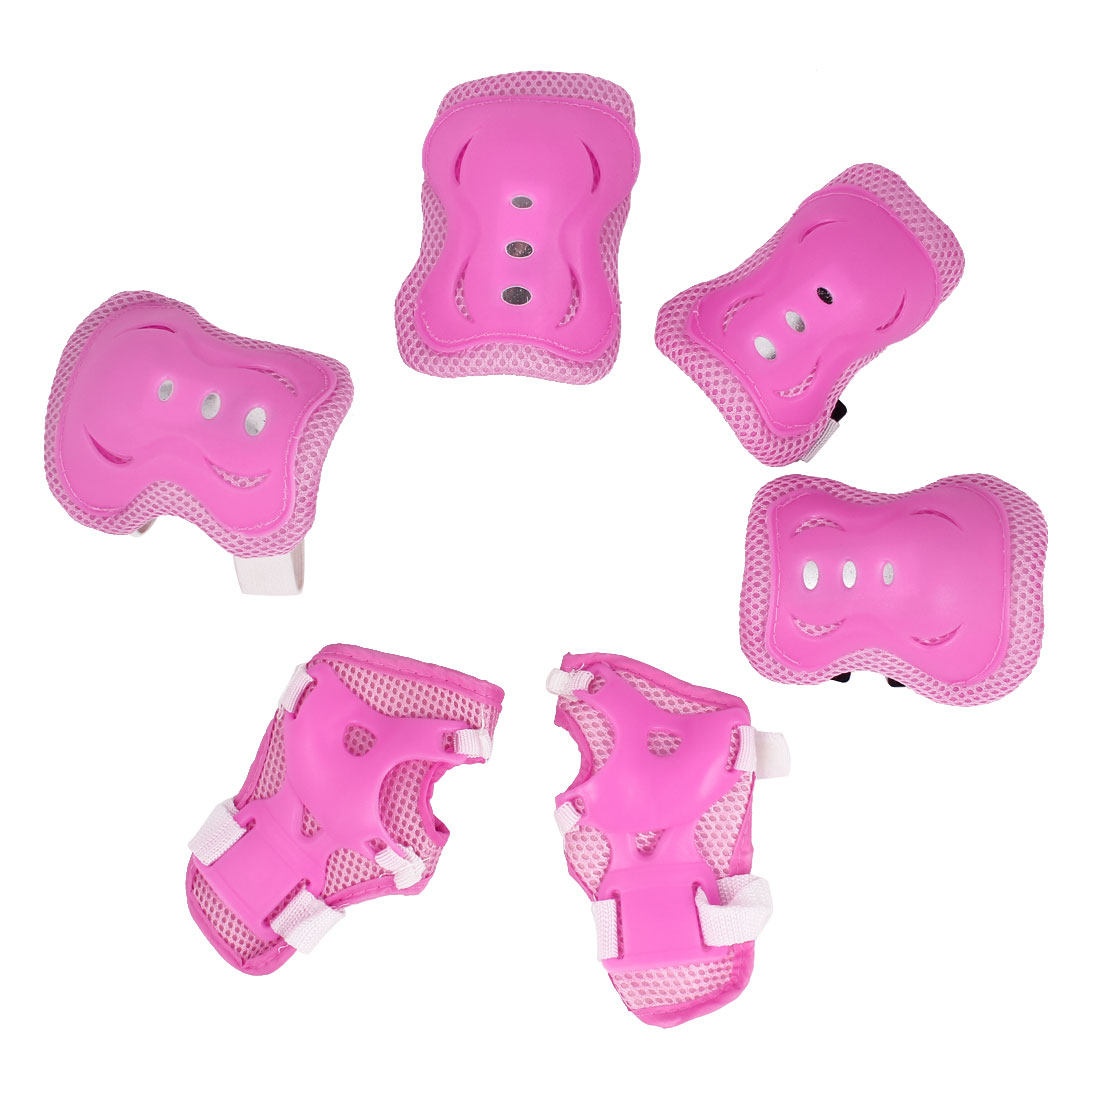 Unique Bargains Skating Skateboard Sports Gear Palm Wrist Guard Elbow Knee Pads For Gilds Children by Unique-Bargains